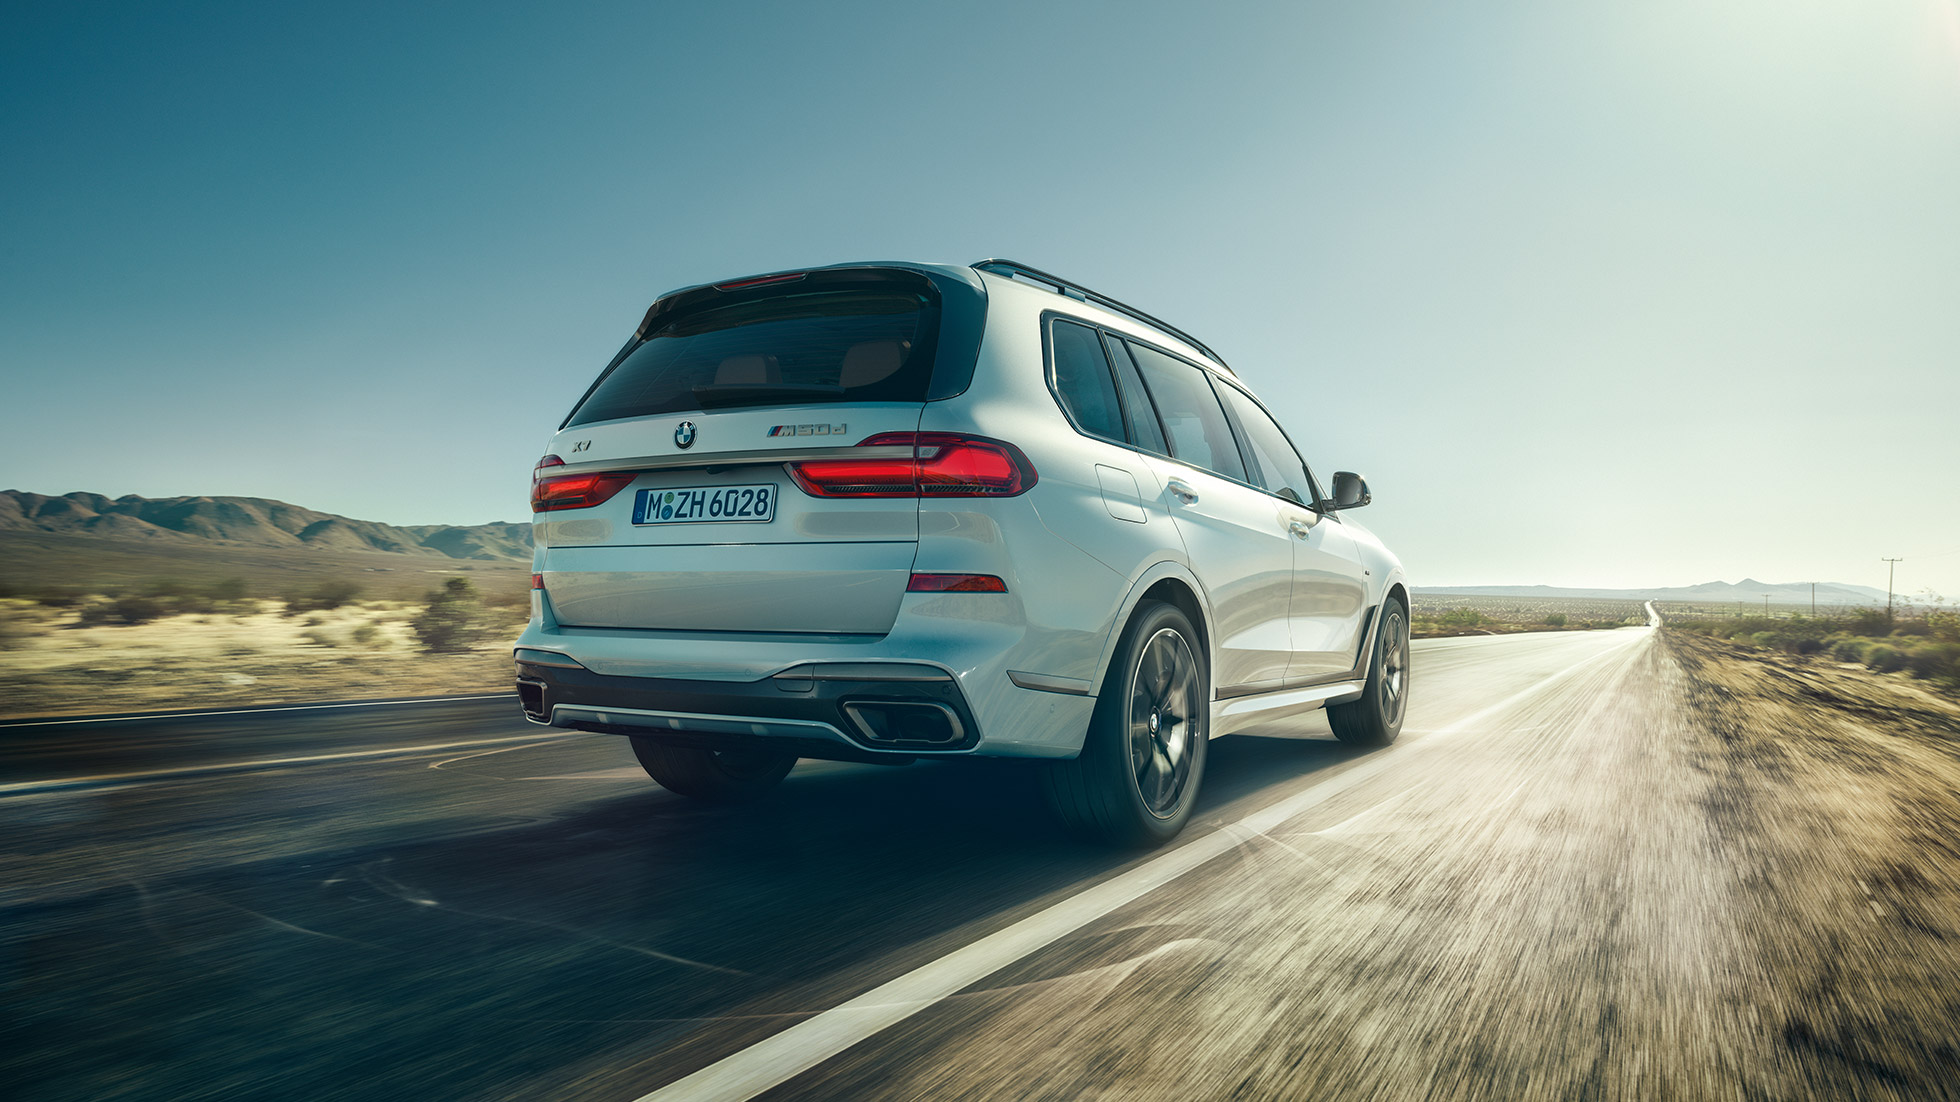 BMW X7 M50d: rear shot of the driving, white BMW X7